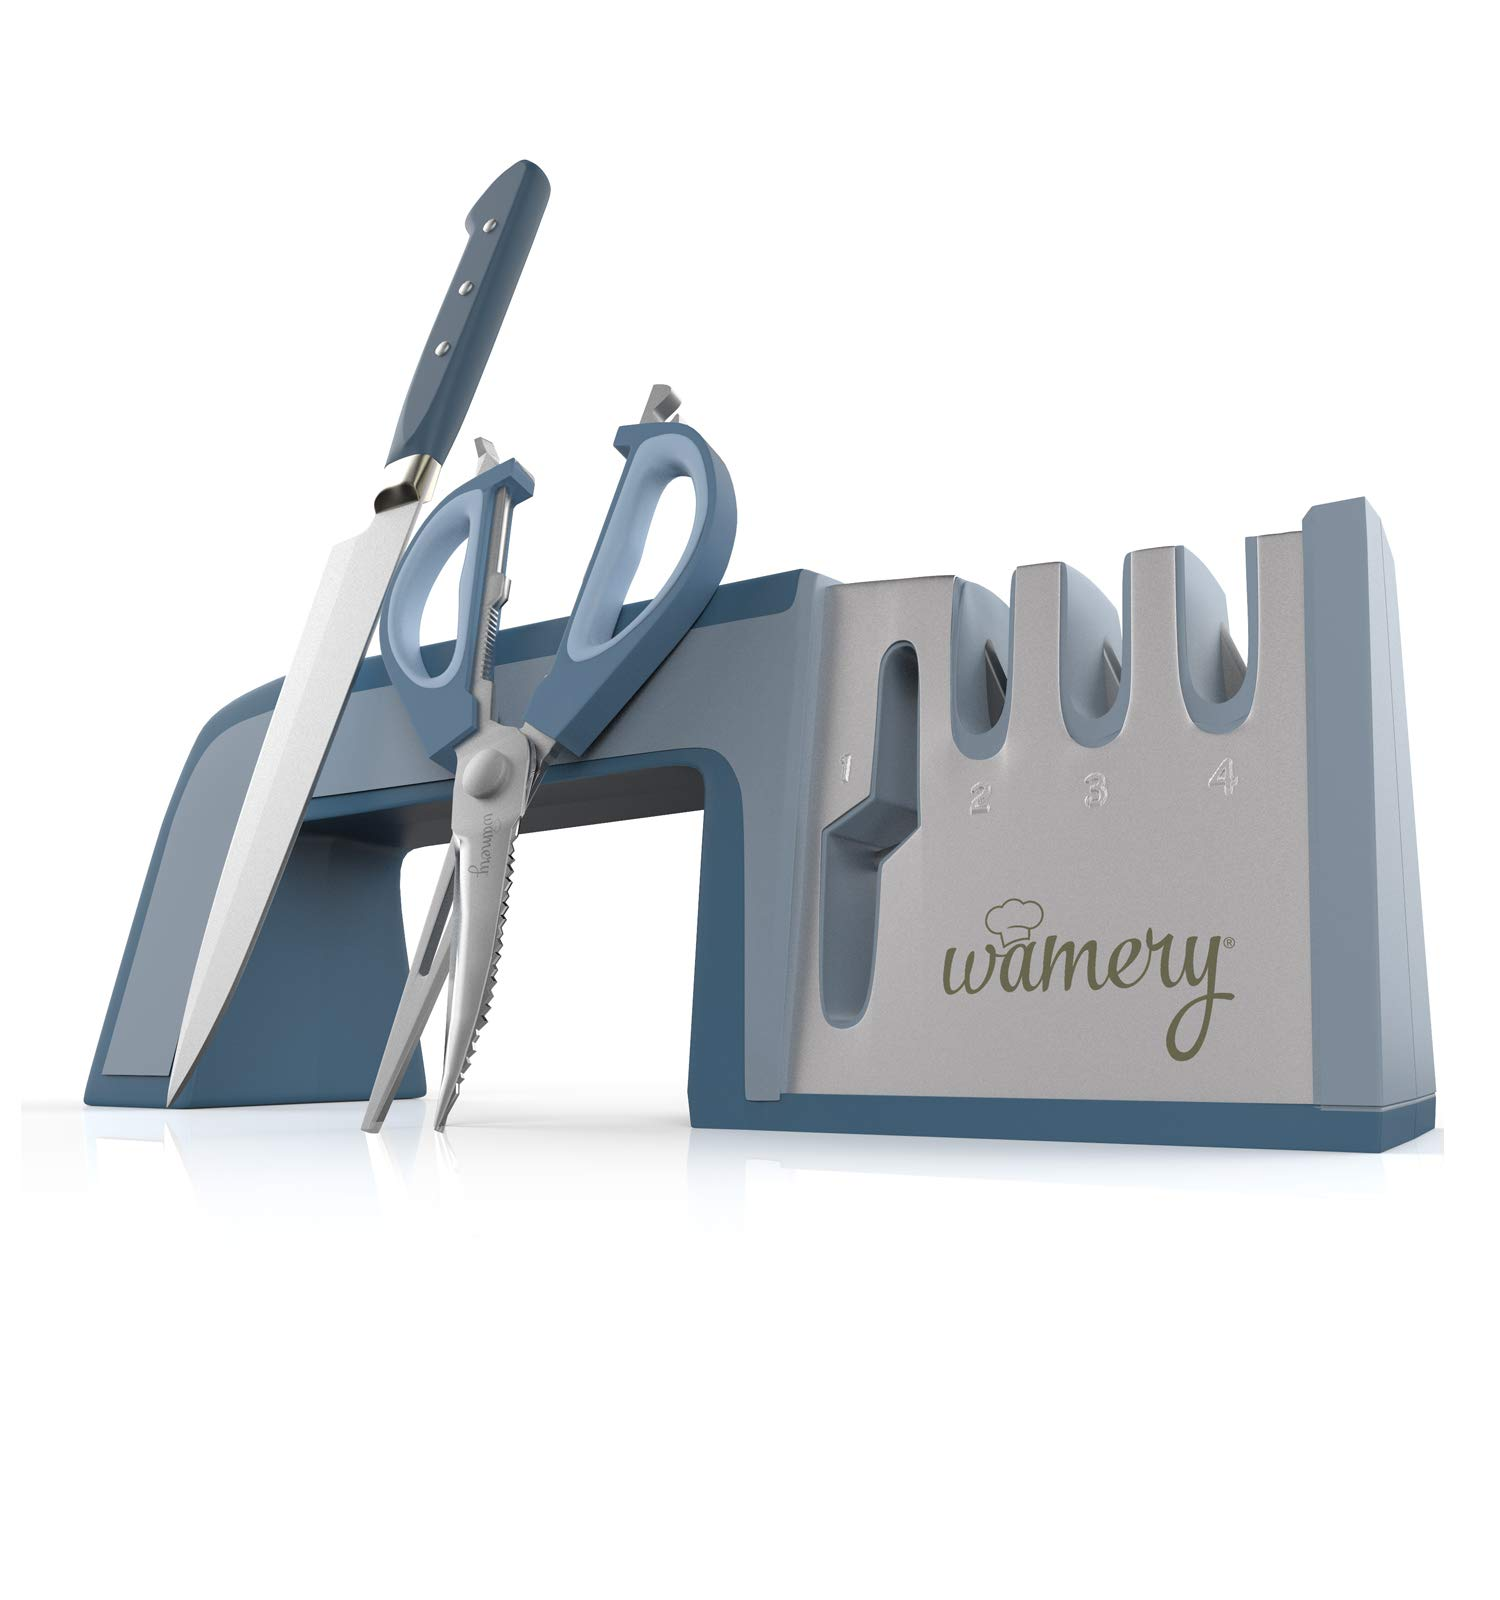 Wamery Knife and Scissors Sharpener. Scissor Sharpeners Professional, Works Great as seen on tv. 4-Stage Kitchen Knife Sharpening Tool. Ceramic Knife Sharpener, Shear Sharpener. by Wamery